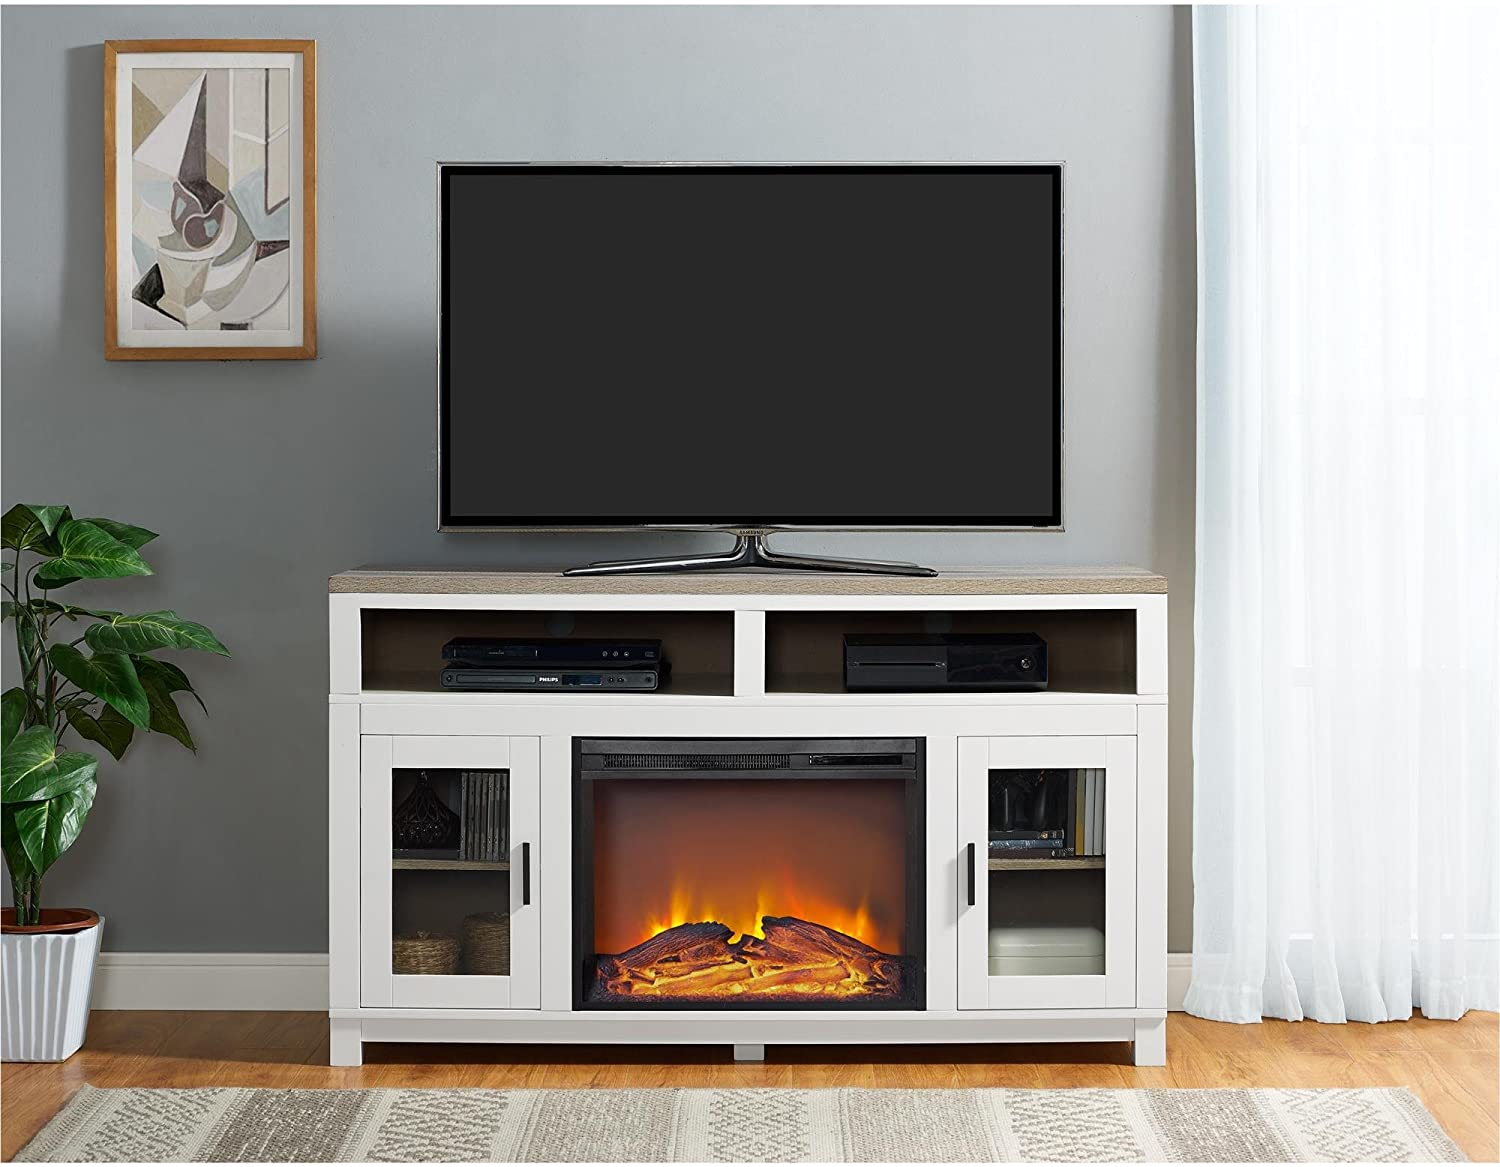 15 Best electric fireplace TV stand in 2021 2